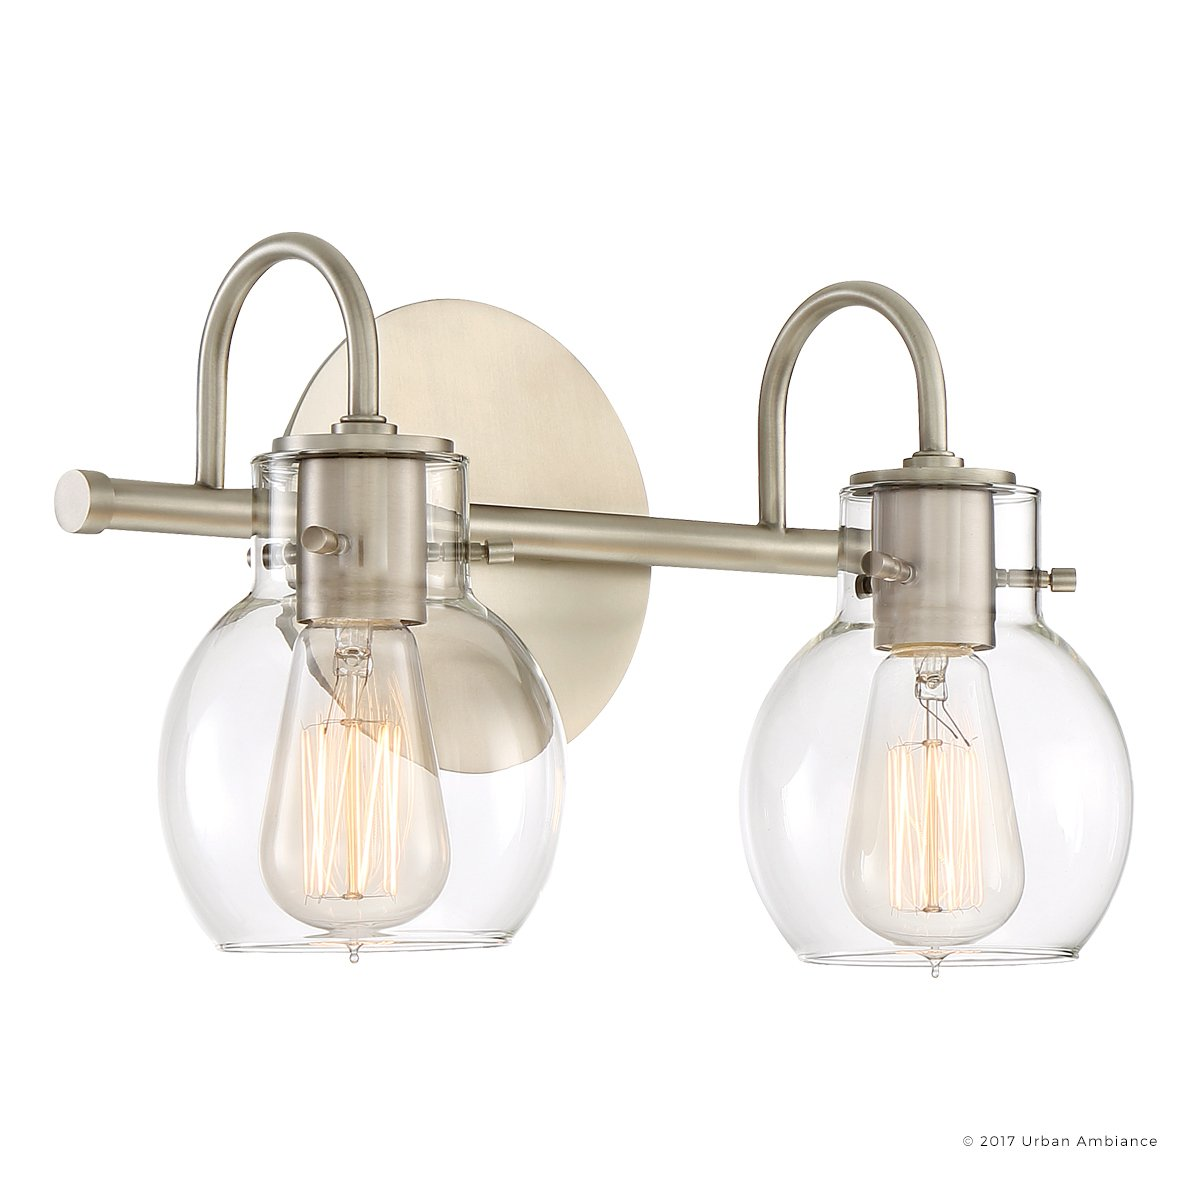 Luxury Vintage Bathroom Light, Medium Size: 9''H x 14''W, with Industrial Style Elements, Floating Glass Design, Aged Nickel Finish and Clear Glass, Includes Edison Bulbs, UQL2040 by Urban Ambiance